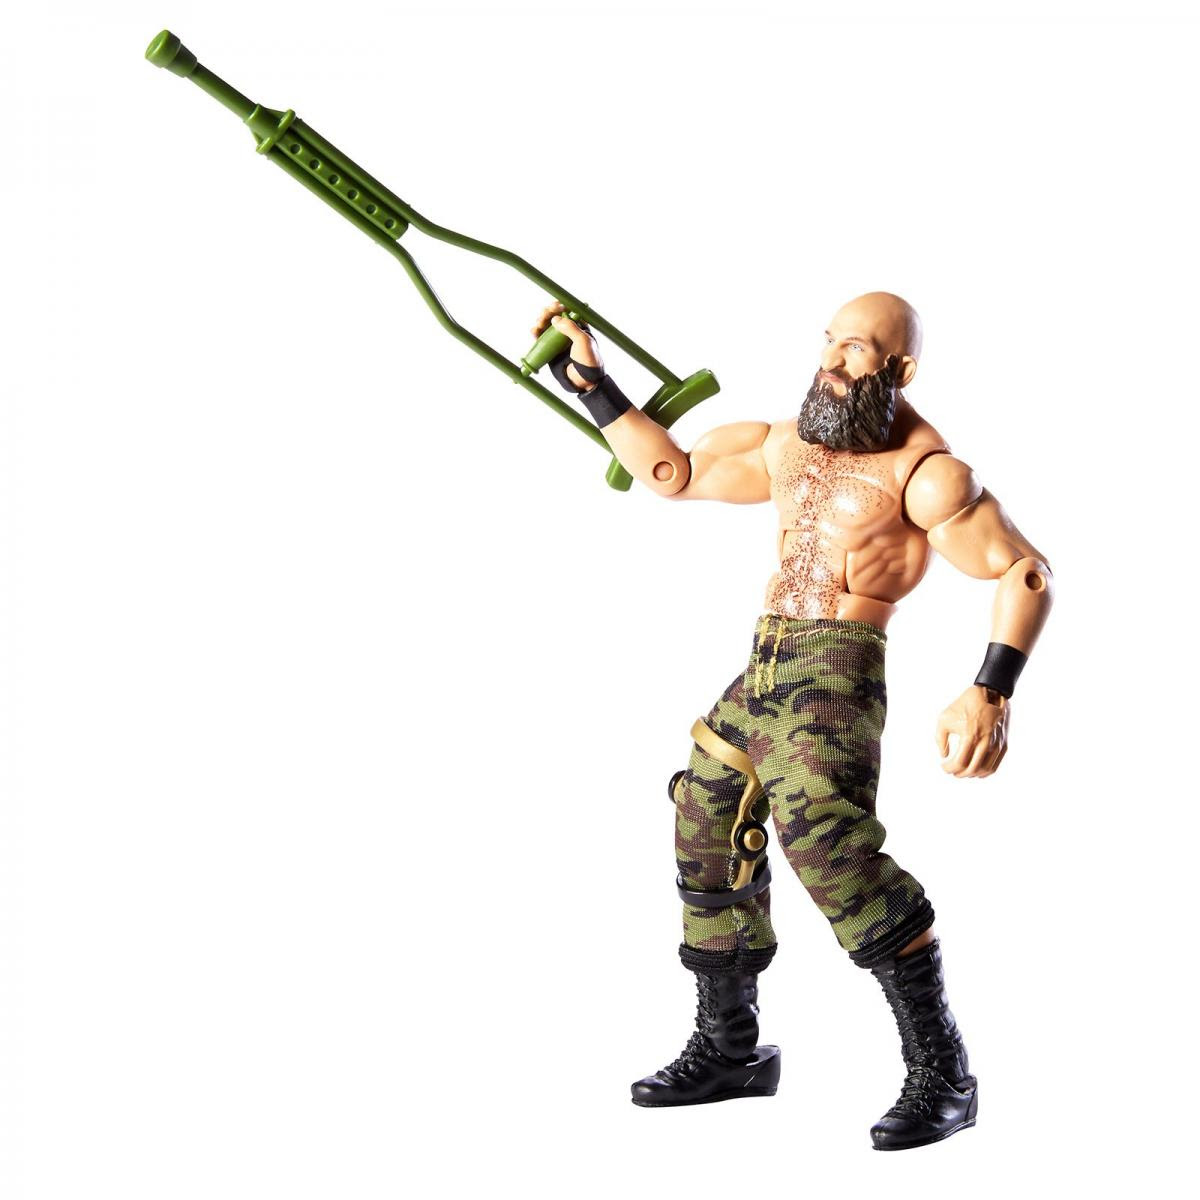 Image of WWE Wrestling Elite Series 69 - Tommaso Ciampa Action Figure - SEPTEMBER 2019